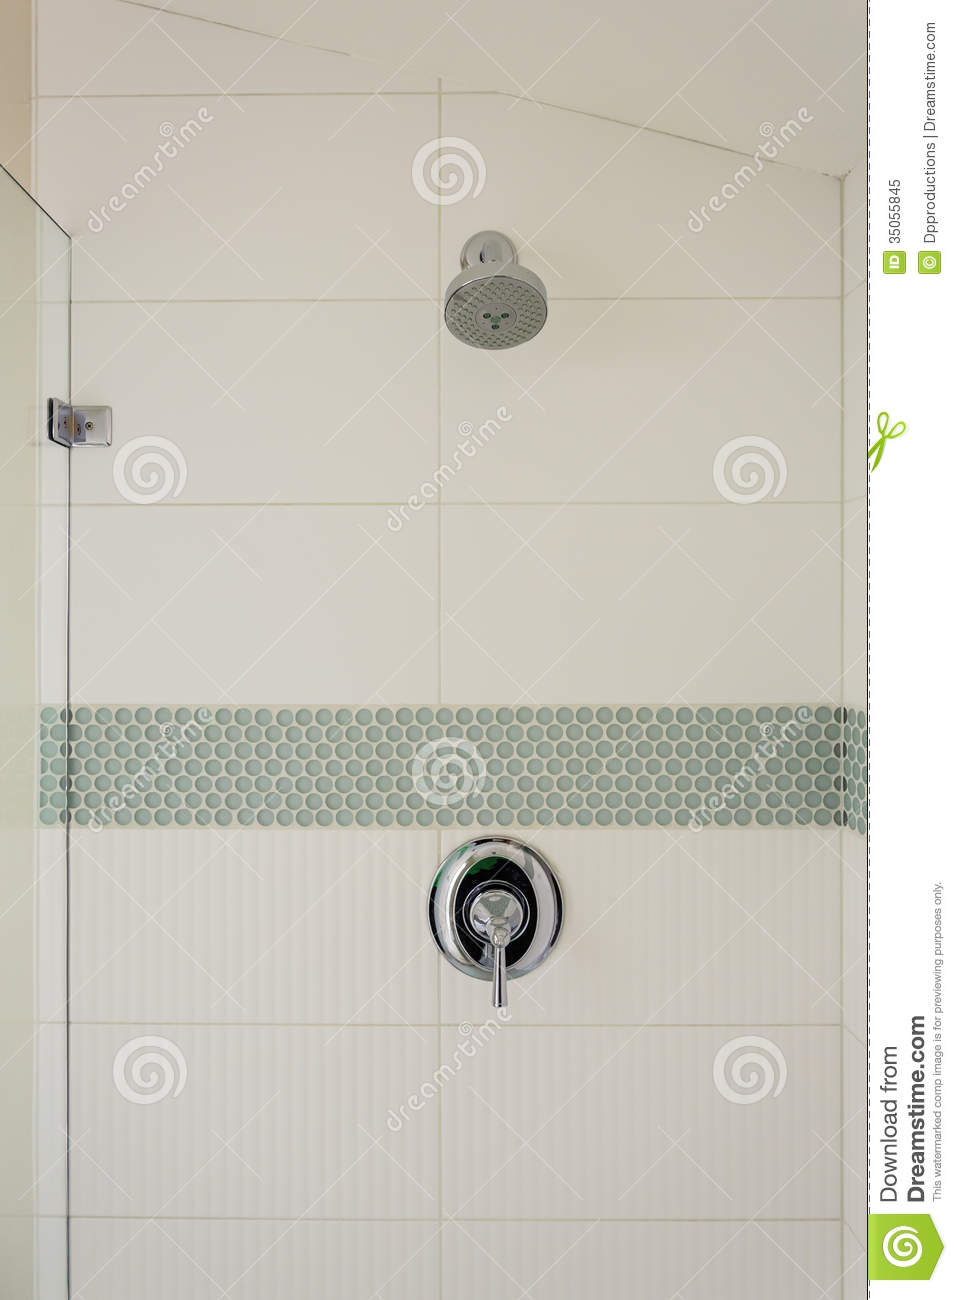 Bathroom Shower And Fixture Stock Image Image 35055845